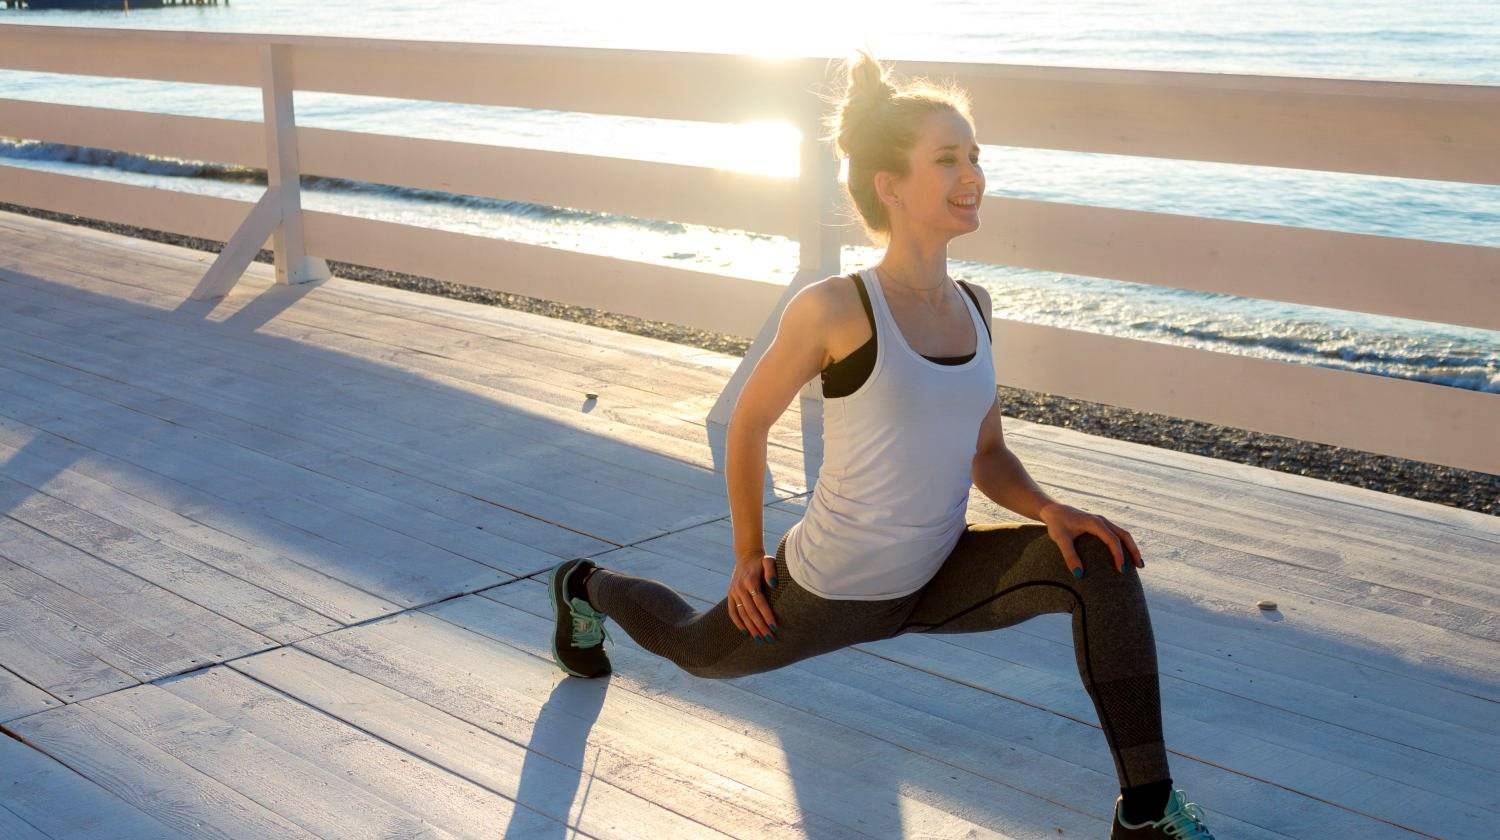 Slim woman stretching legs in deep lunge   Reasons To Start Your Day With A Morning Workout   morning exercise routine   Featured